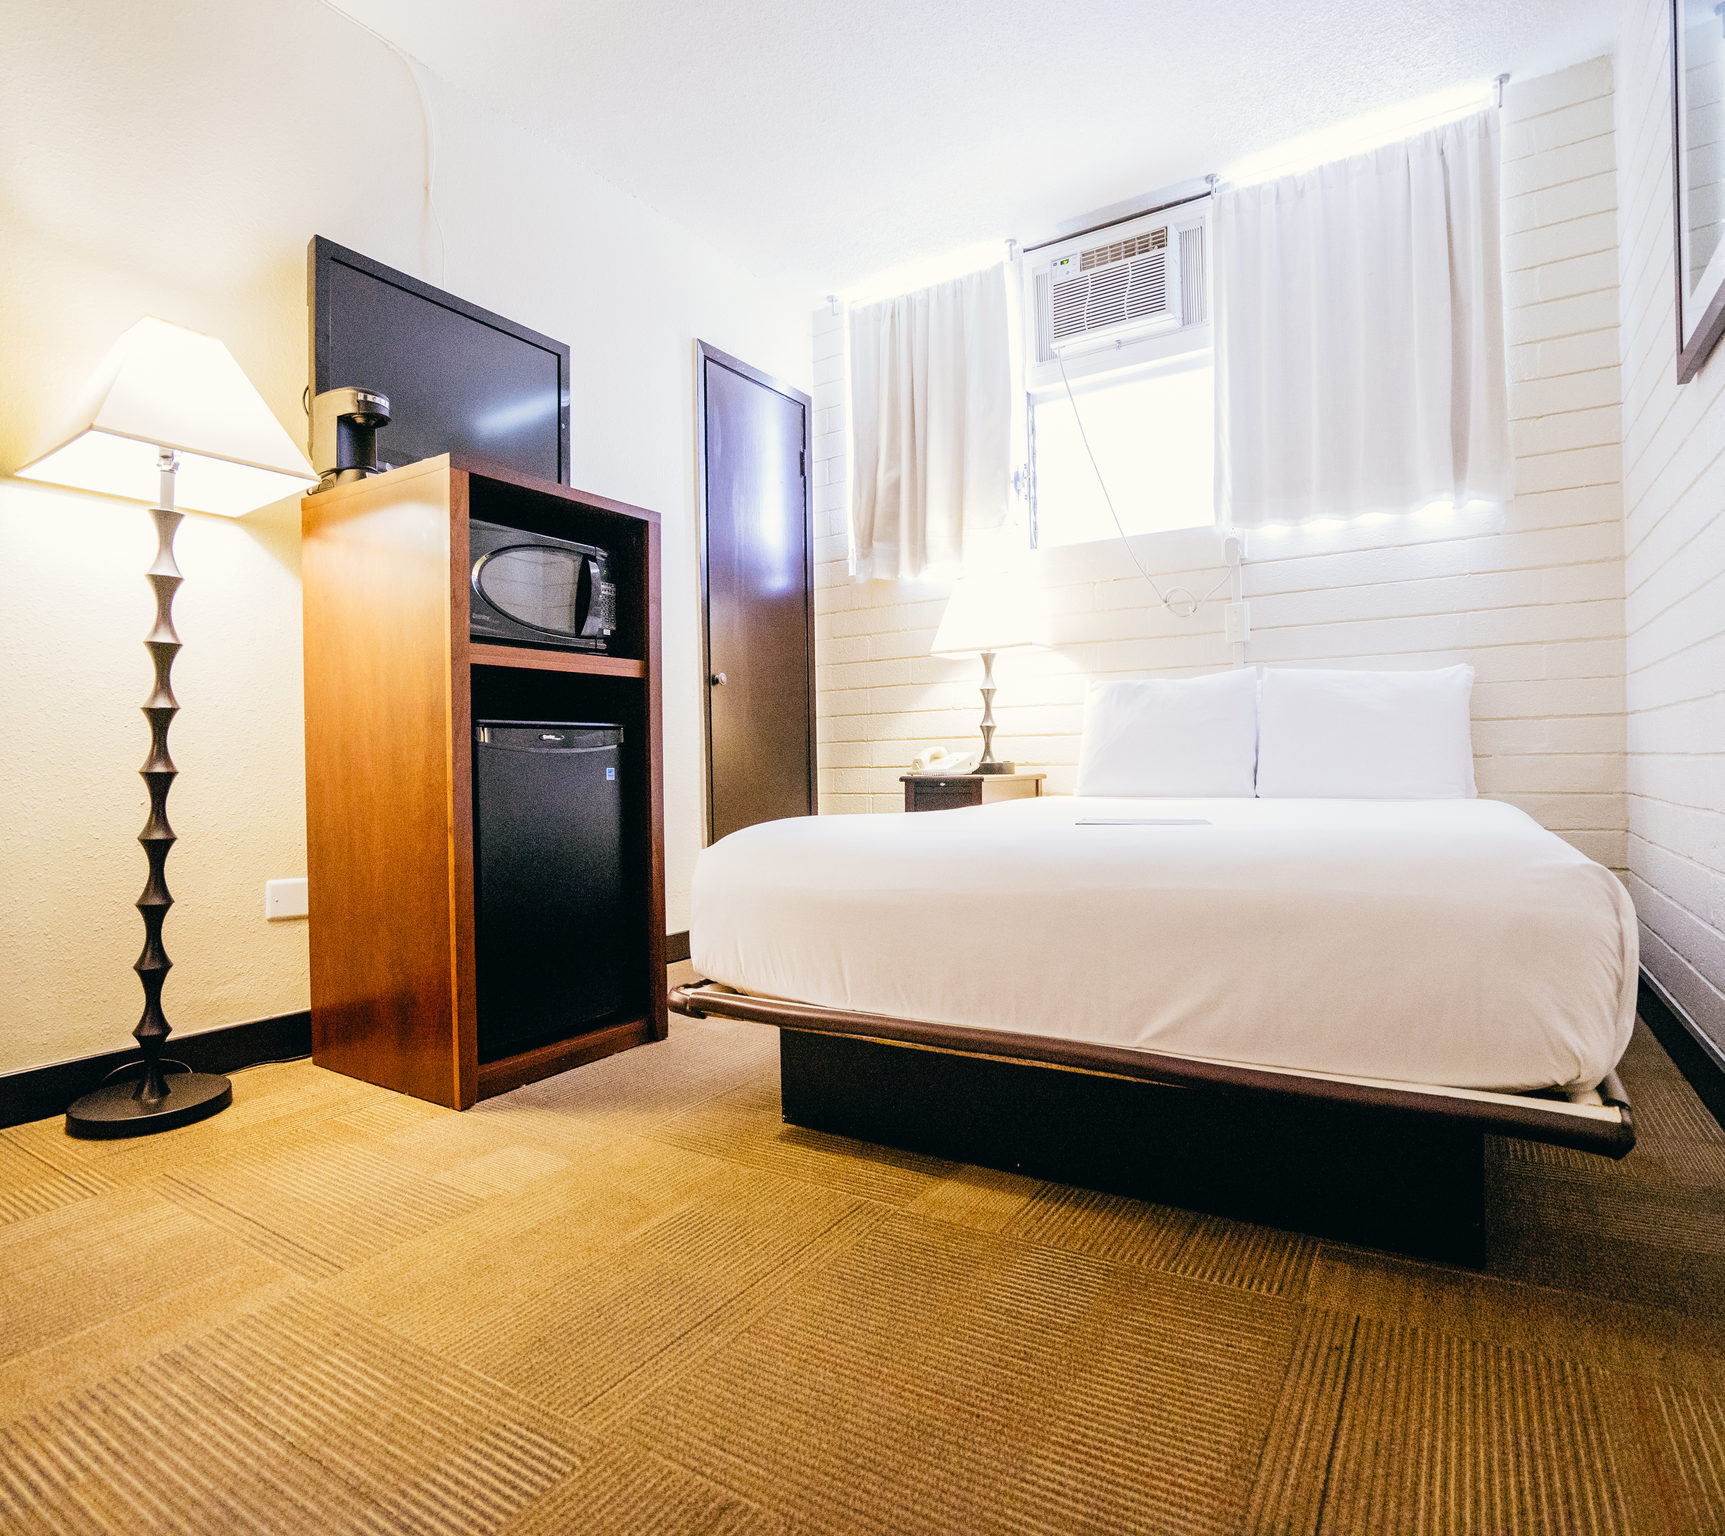 Stay Waikiki Is Unpretentious And Simple Personal Hospitable We Offer A Clean Comfortable Place To Sleep At Night While You Explore Our Island